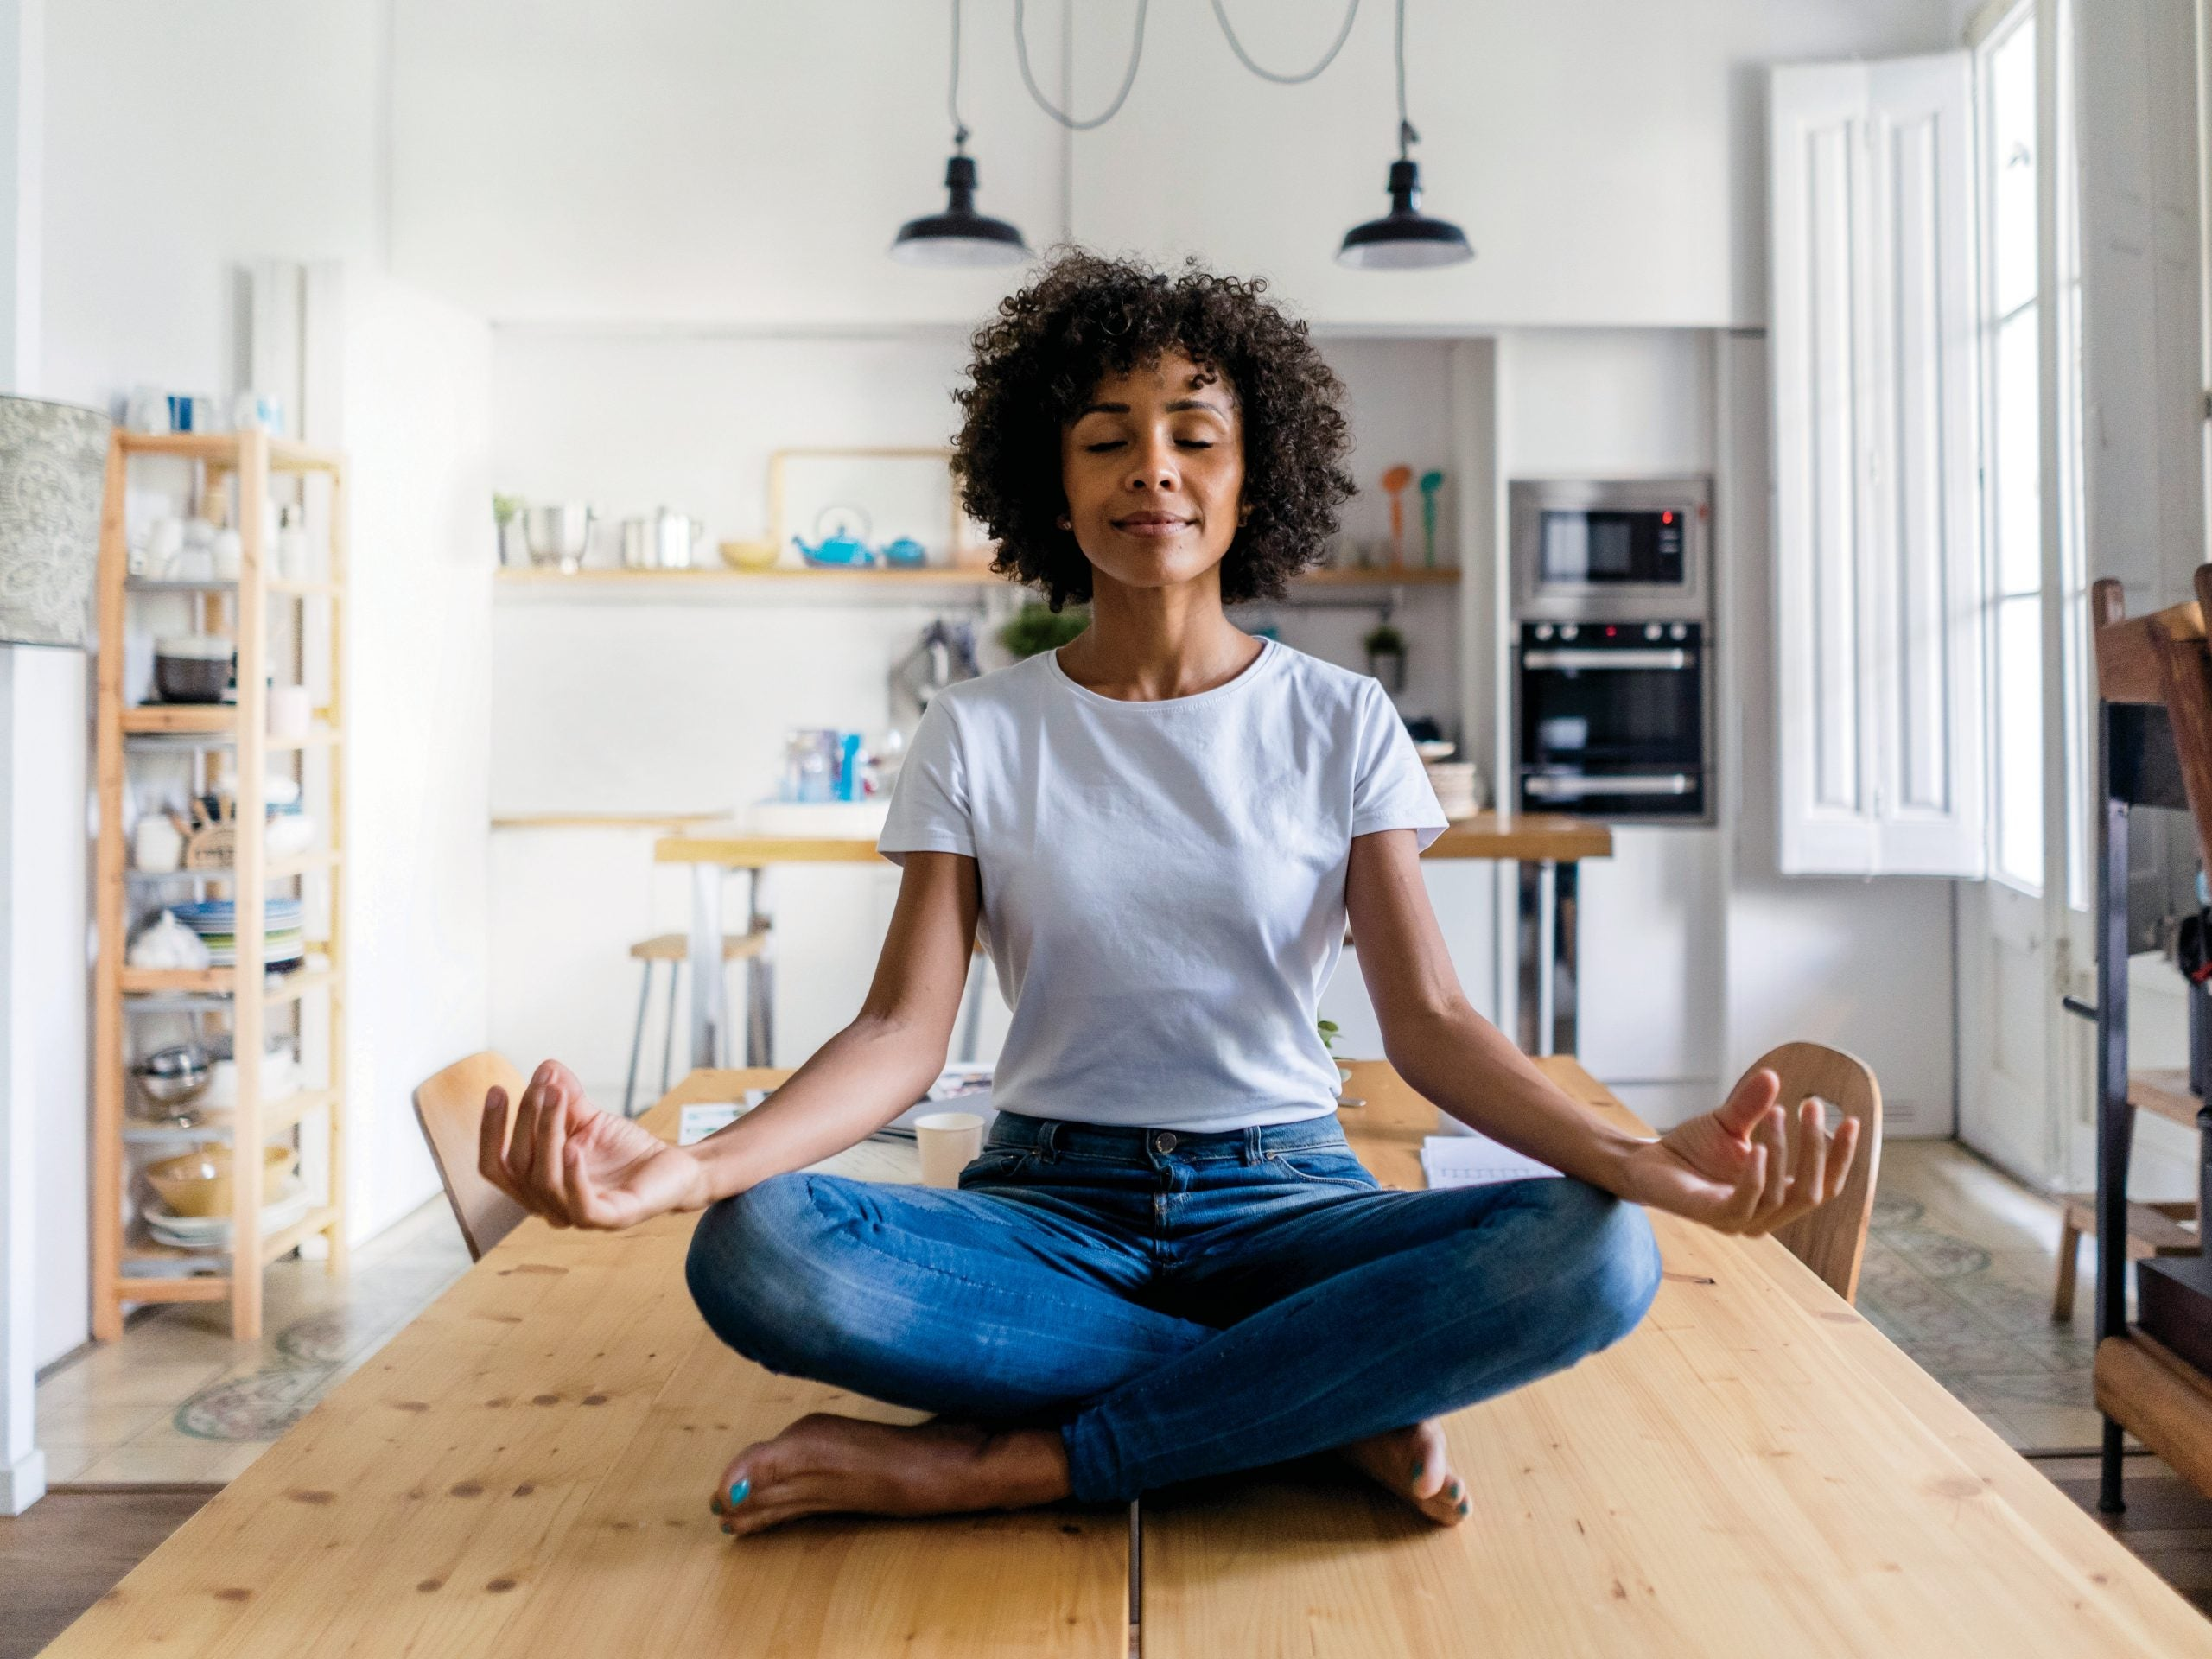 How To Make Your Home As Healthy and Happy As Possible